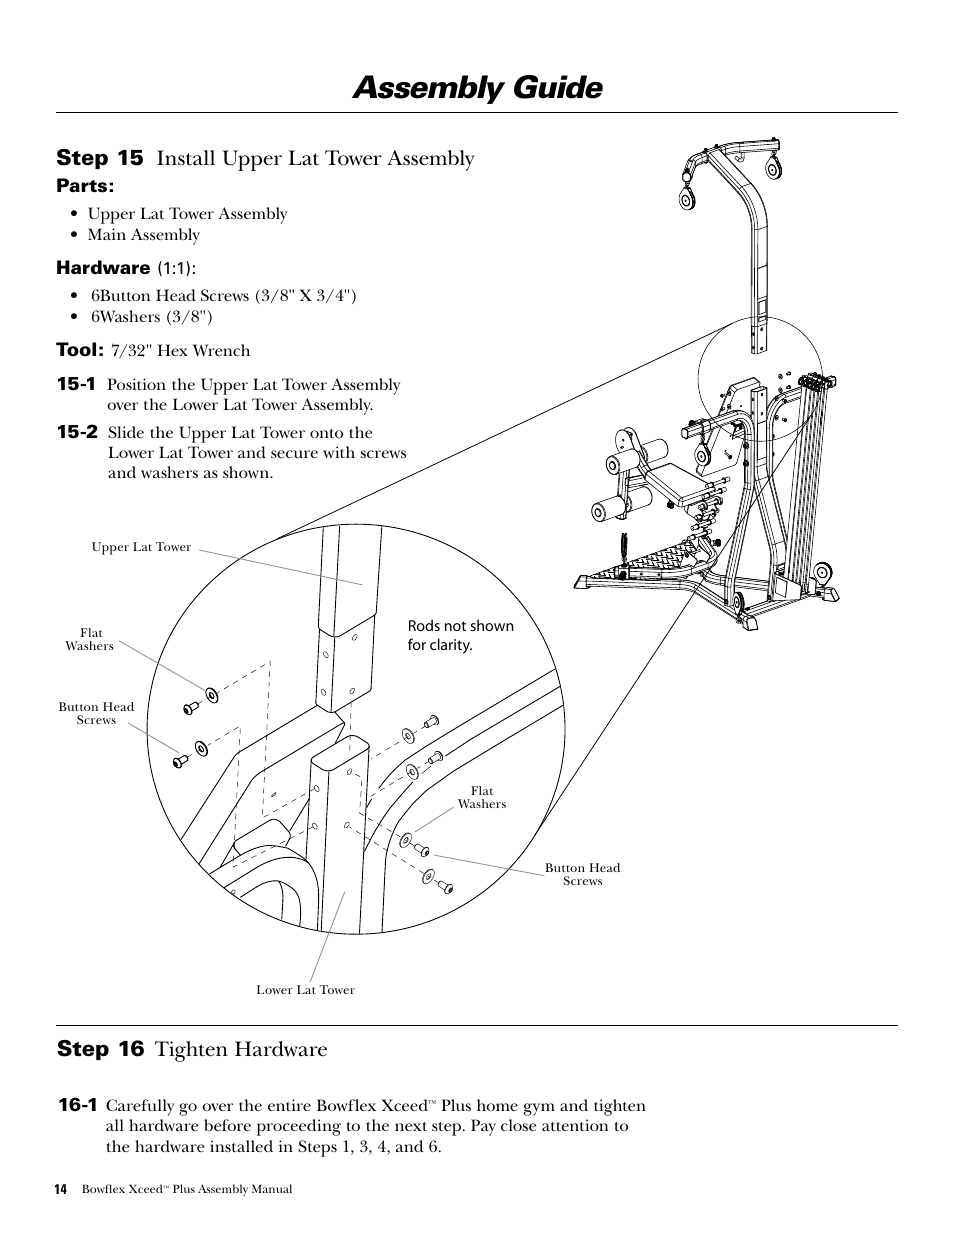 assembly guide step 15 install upper lat tower assembly step 16 rh manualsdir com Bowflex Xceed Workout Chart Bowflex Xceed Costco